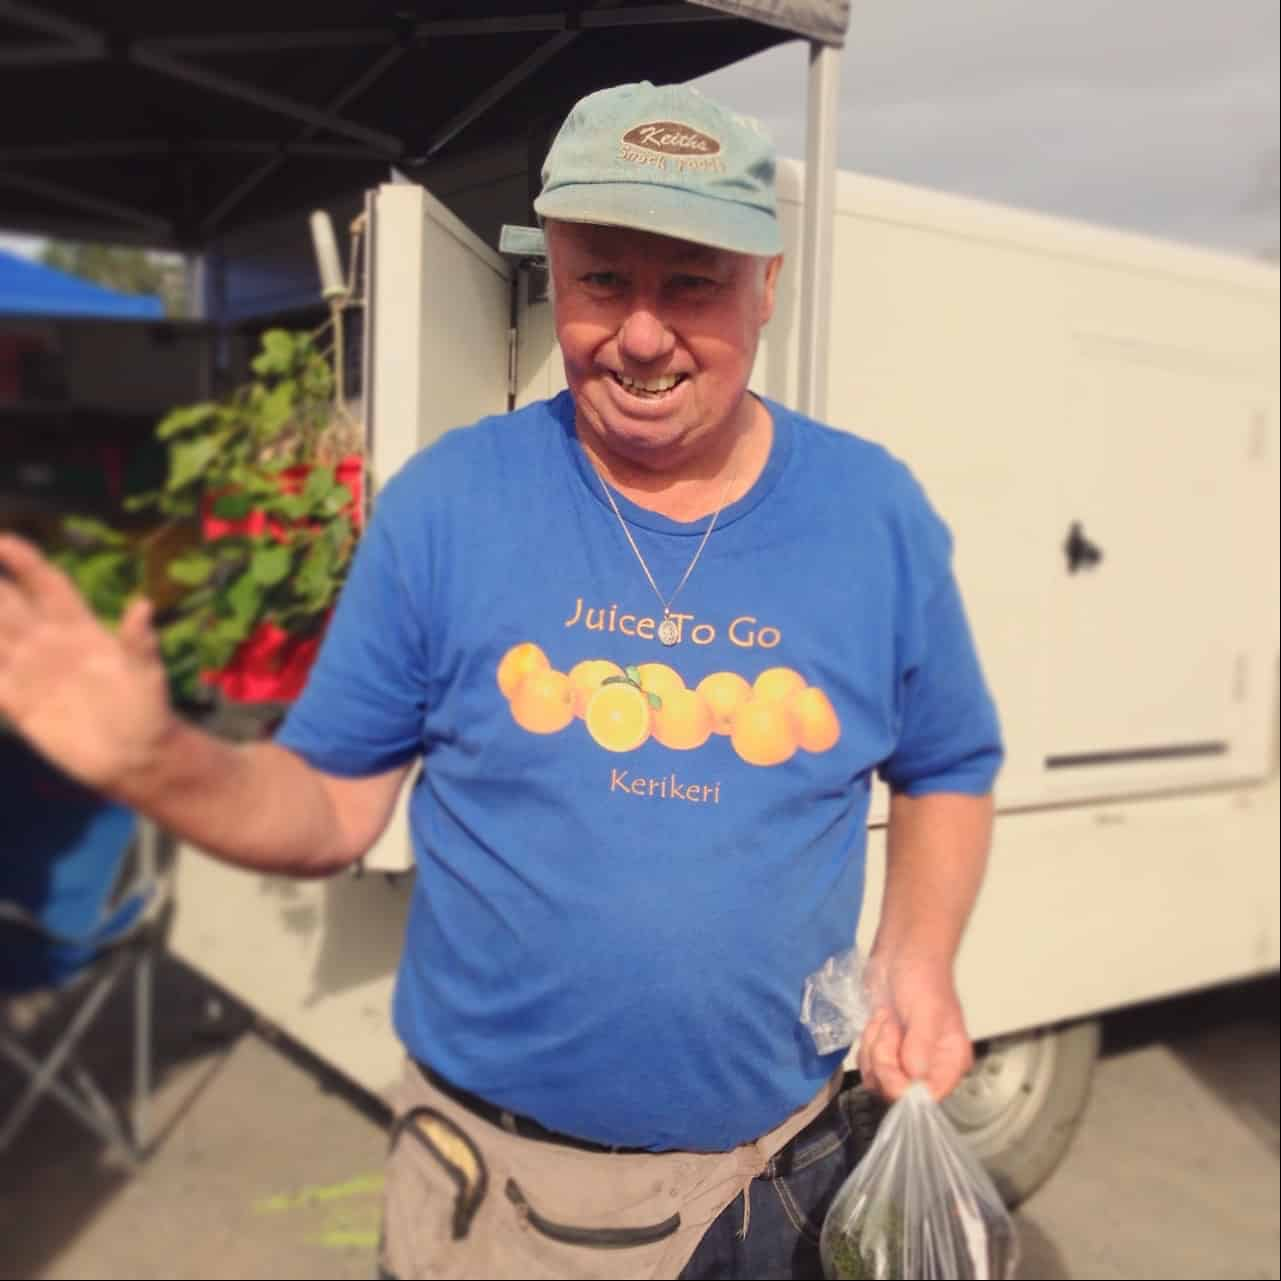 As well as selling his fruit at the local market, Keith also owns The Farm Store on Kerikeri Road, where you can buy in-season fruit. It's run with an honesty box system, but there's a bell you can ring if you need change.